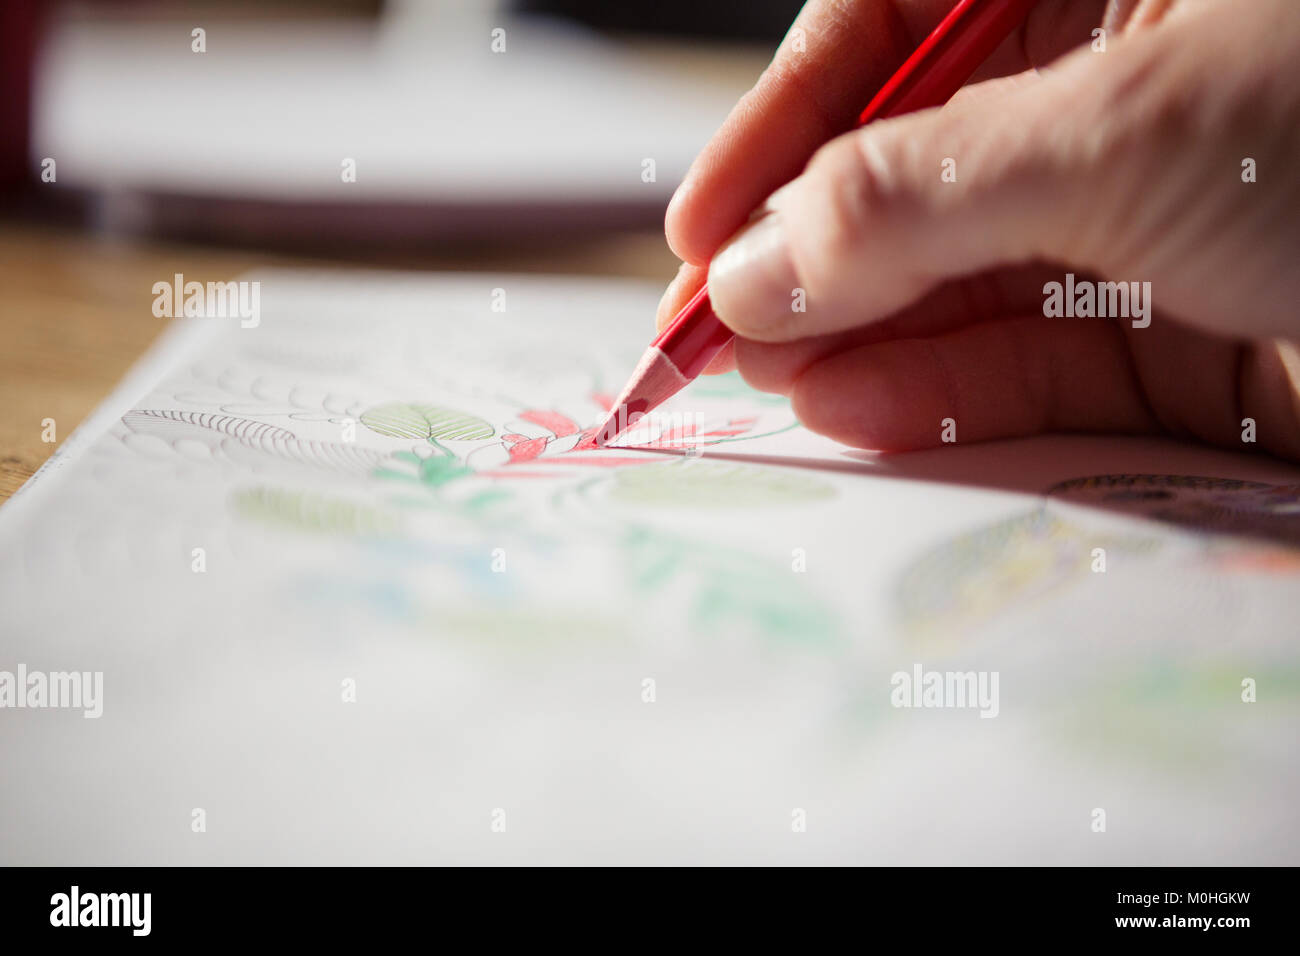 Adult using pencil in an adult colouring book Stock Photo